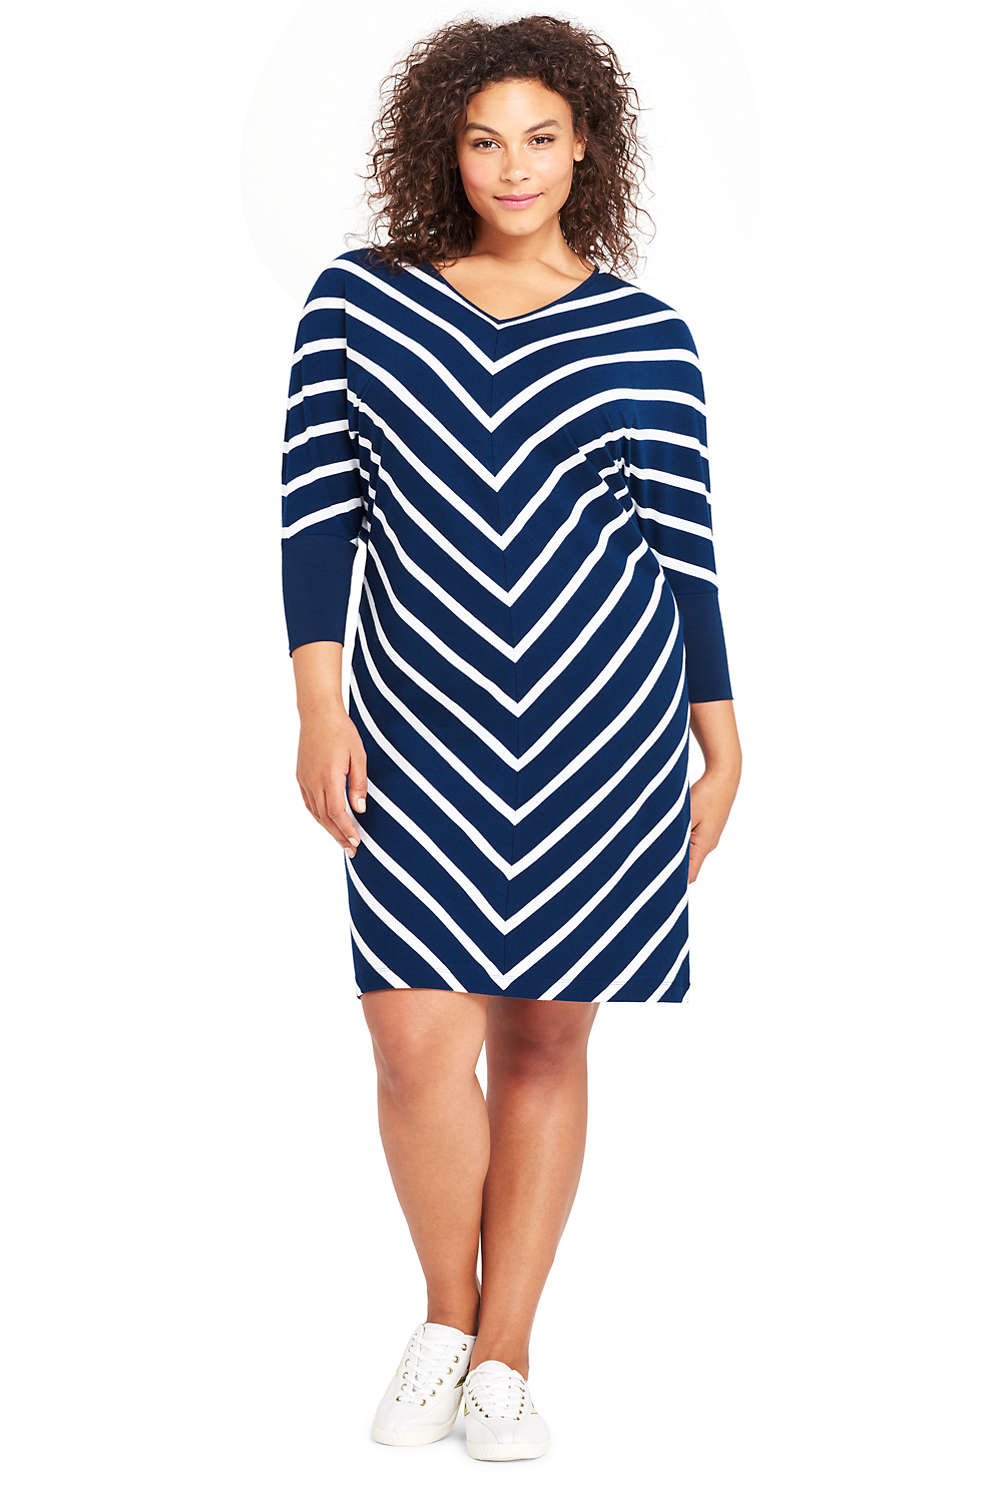 Womens Plus Size Long Sleeve Knit T Shirt Dress From Lands End